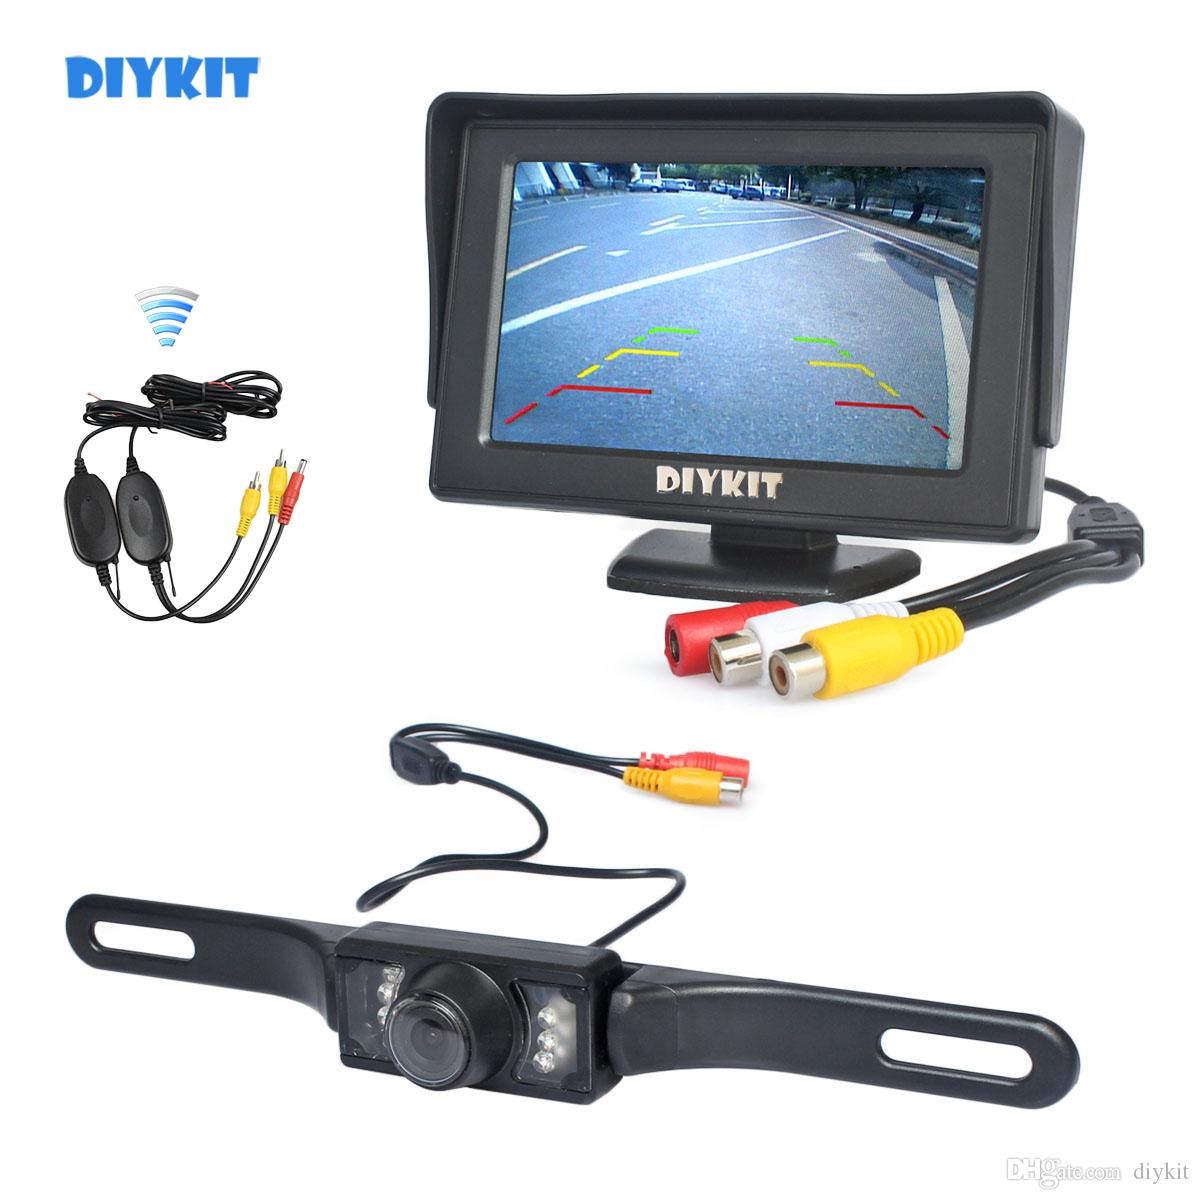 DIYKIT 4.3inch Color TFT LCD Car Monitor + IR Night Vision HD CCD Rear View Car Camera Wireless Parking Assistance System